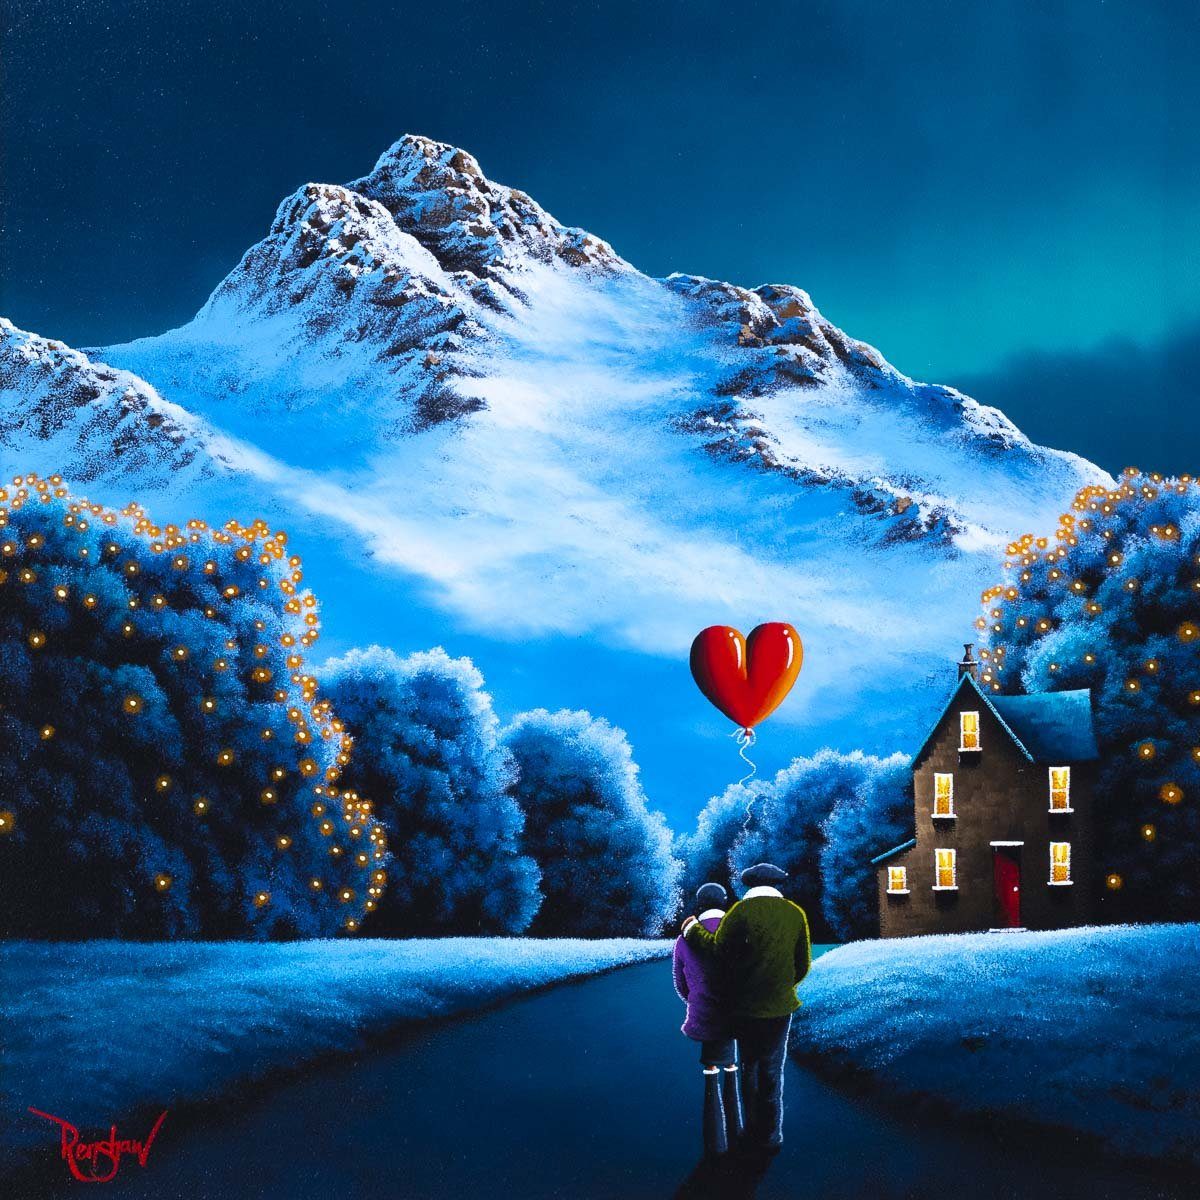 Snow Capped Mountains - Original David Renshaw Framed